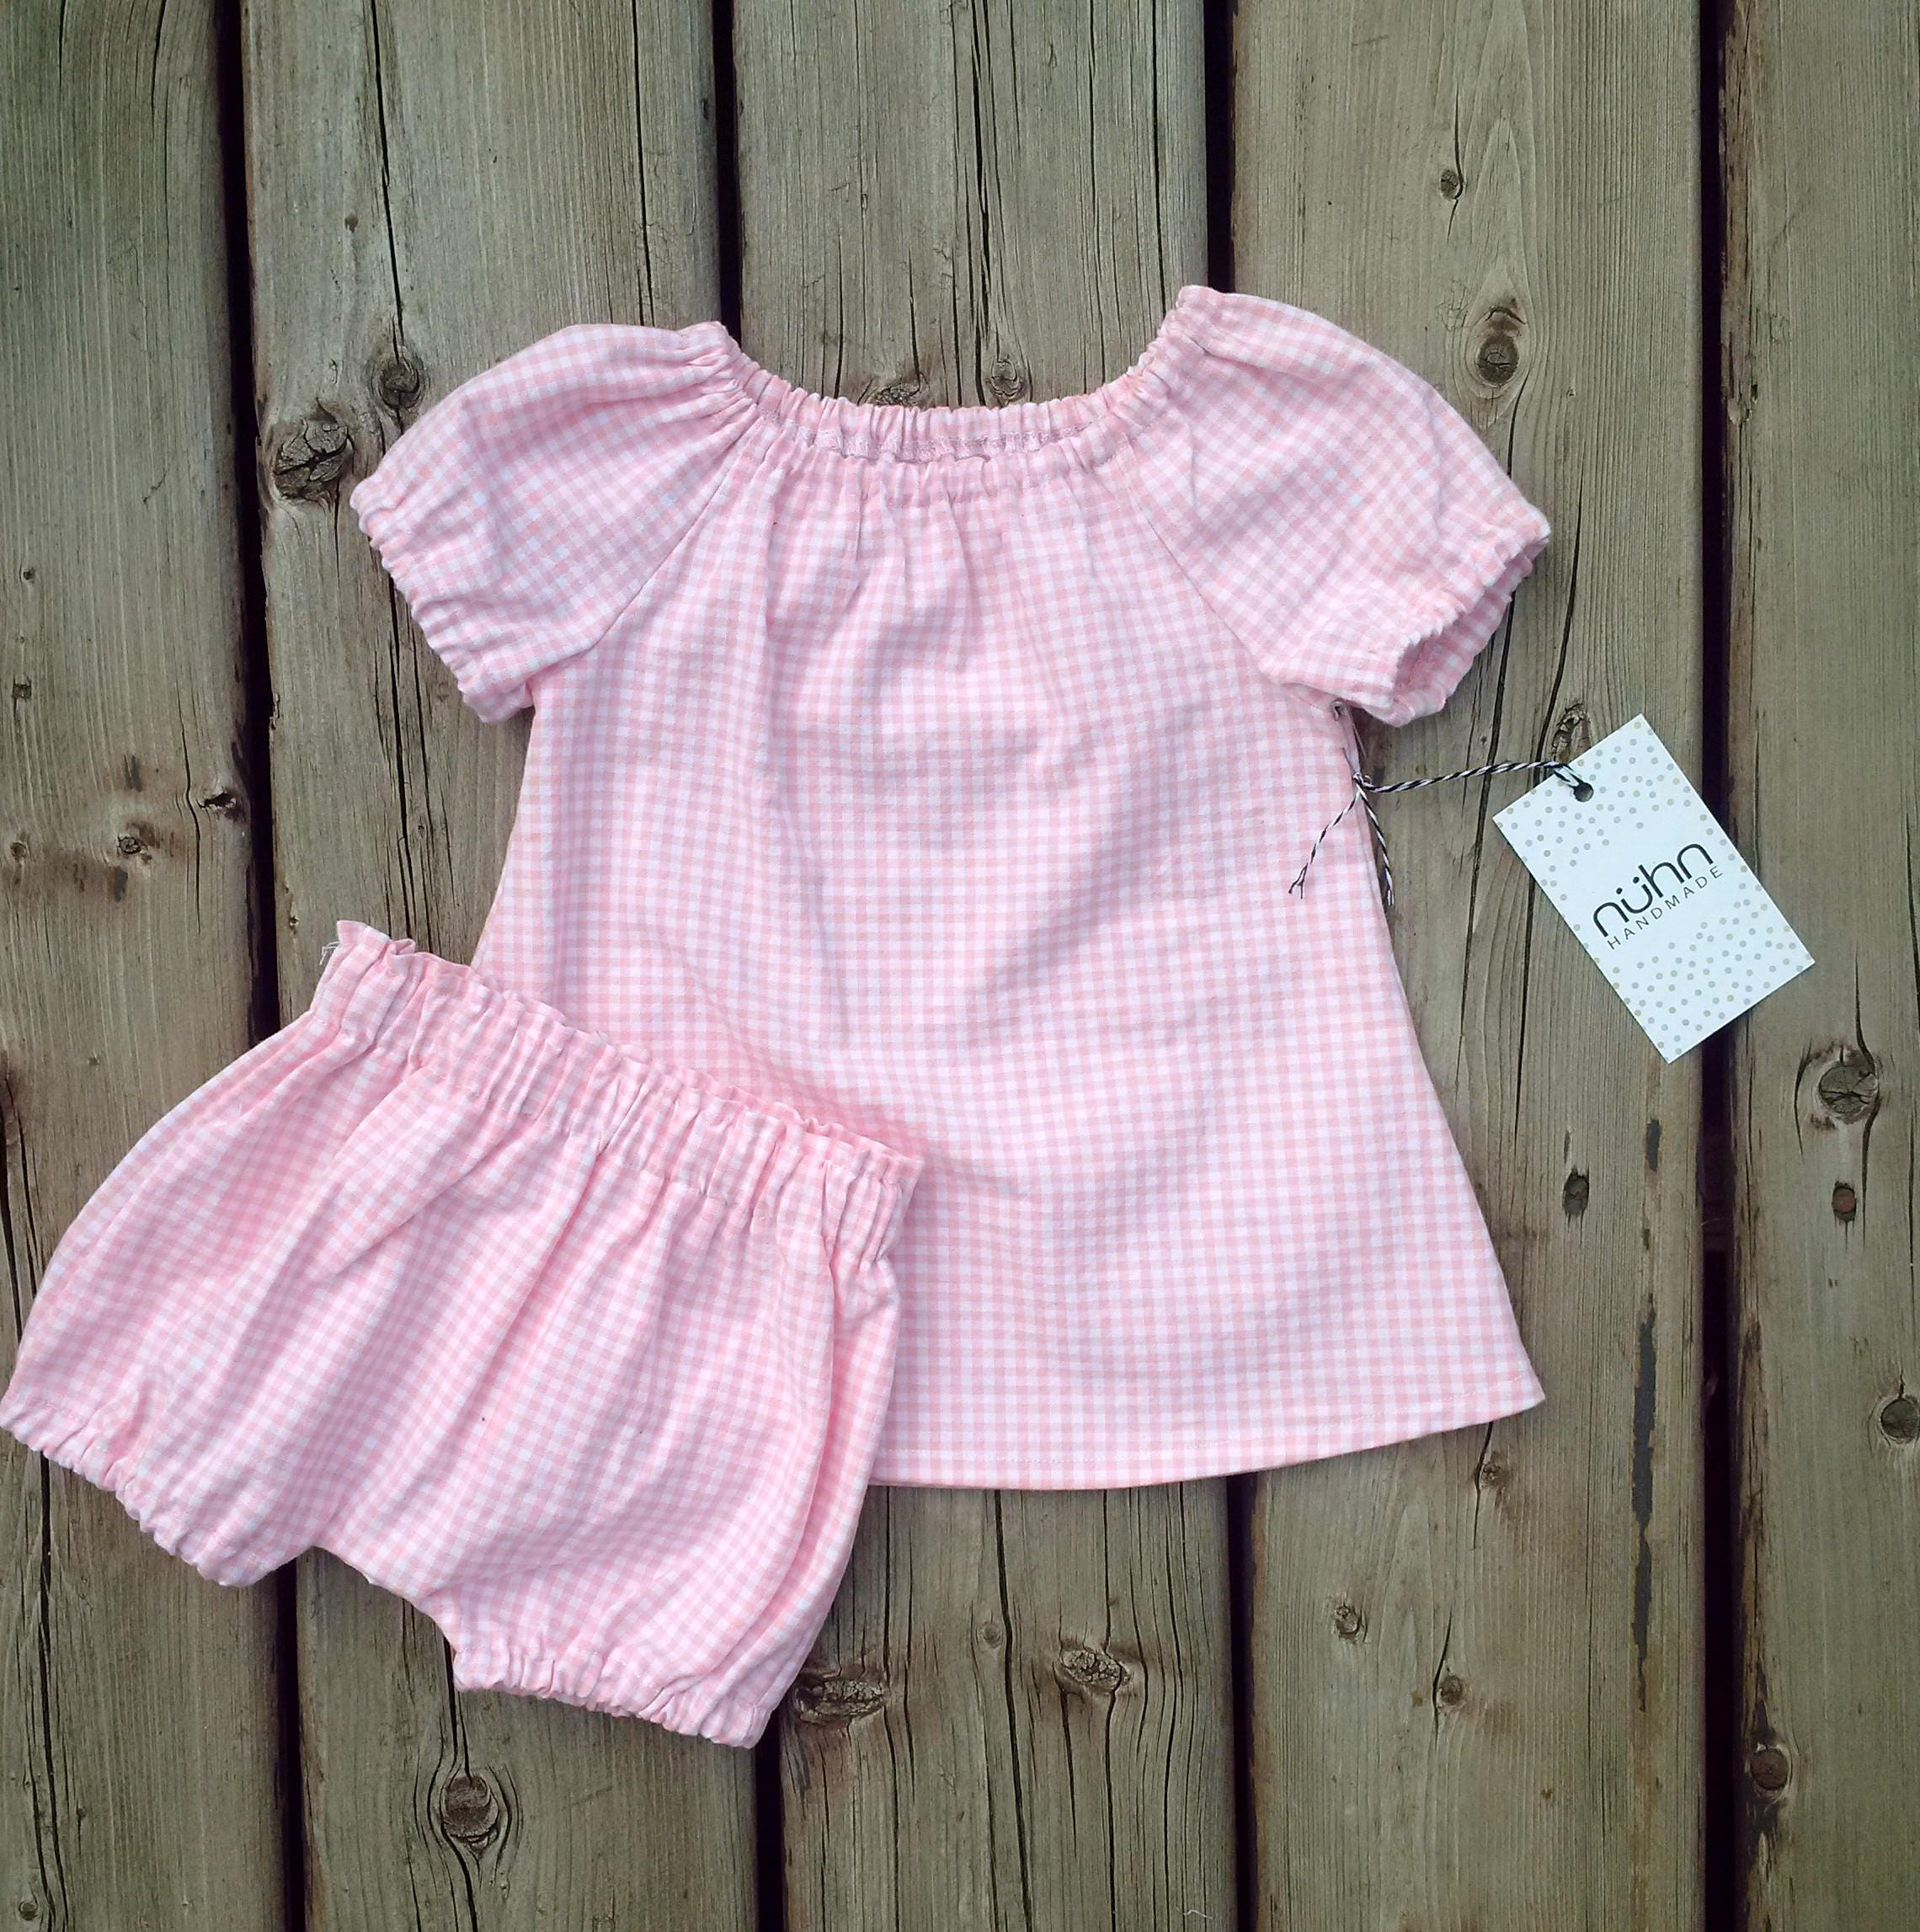 Baby Girls Clothing Girls Clothing Clothing